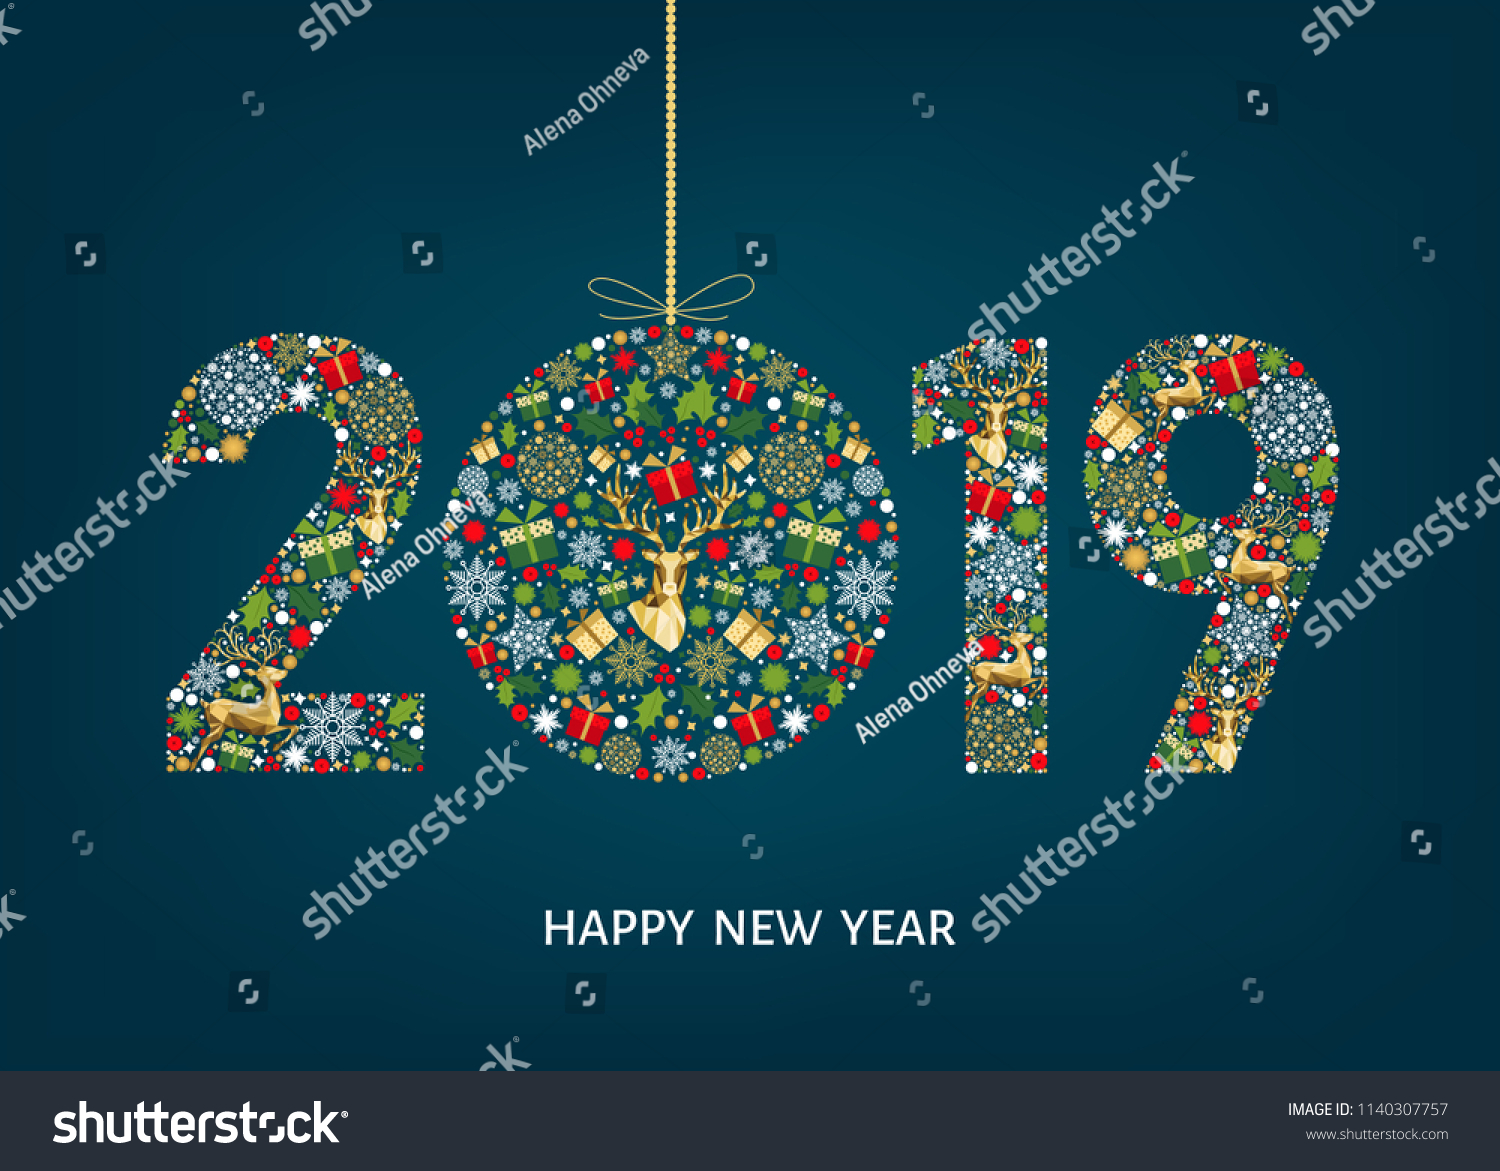 2019 Happy New Year Greeting Card Stock Vector Royalty Free